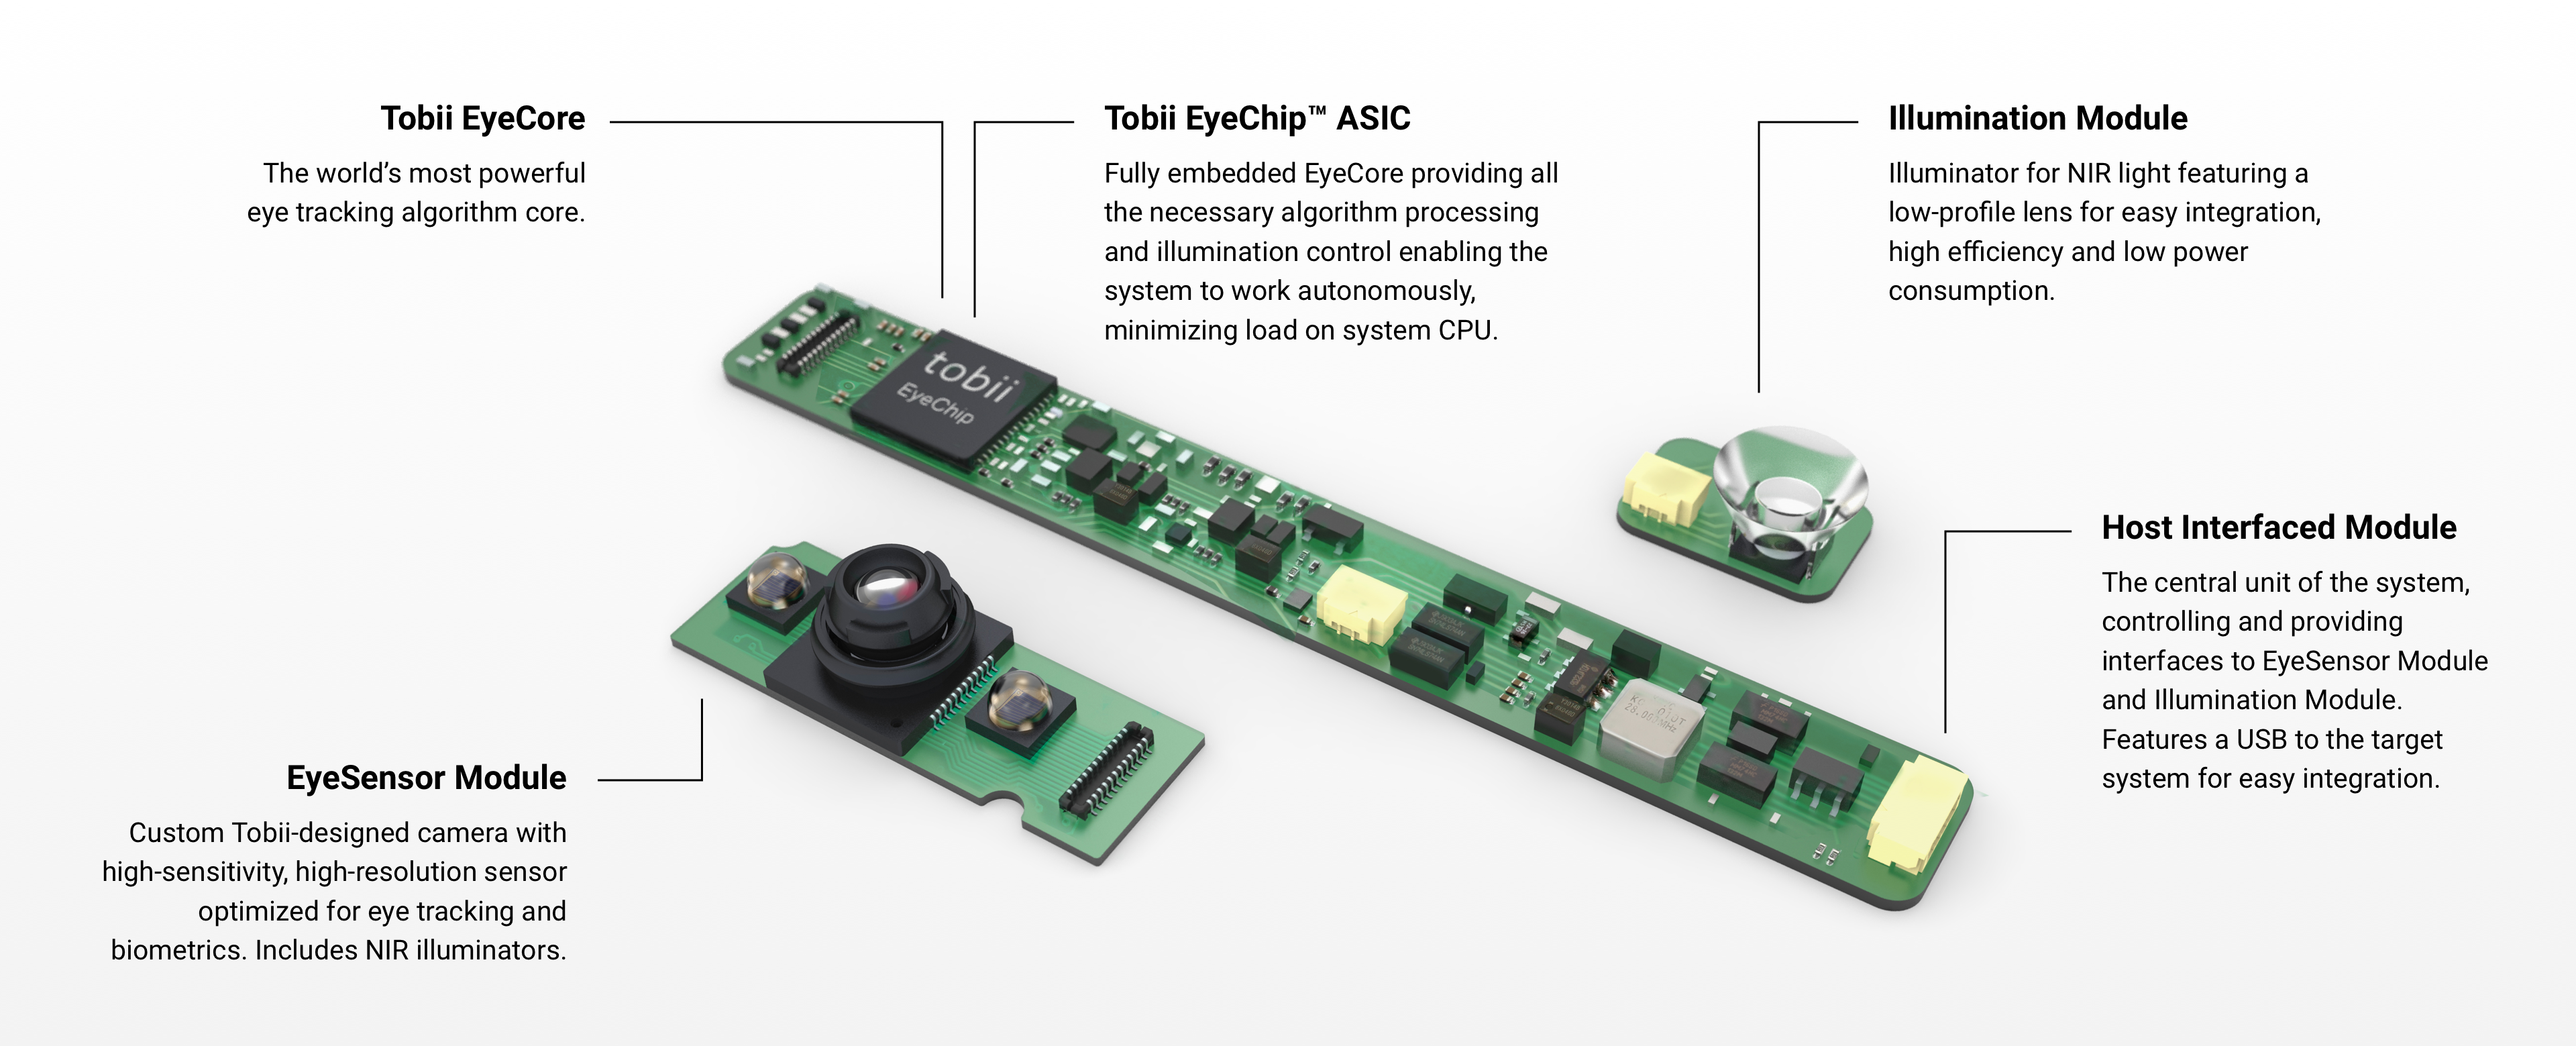 Tobii Announces Next Generation Is5 Eye Tracking Platform Microcontroller Based Electronic Controlled Security System Contacts